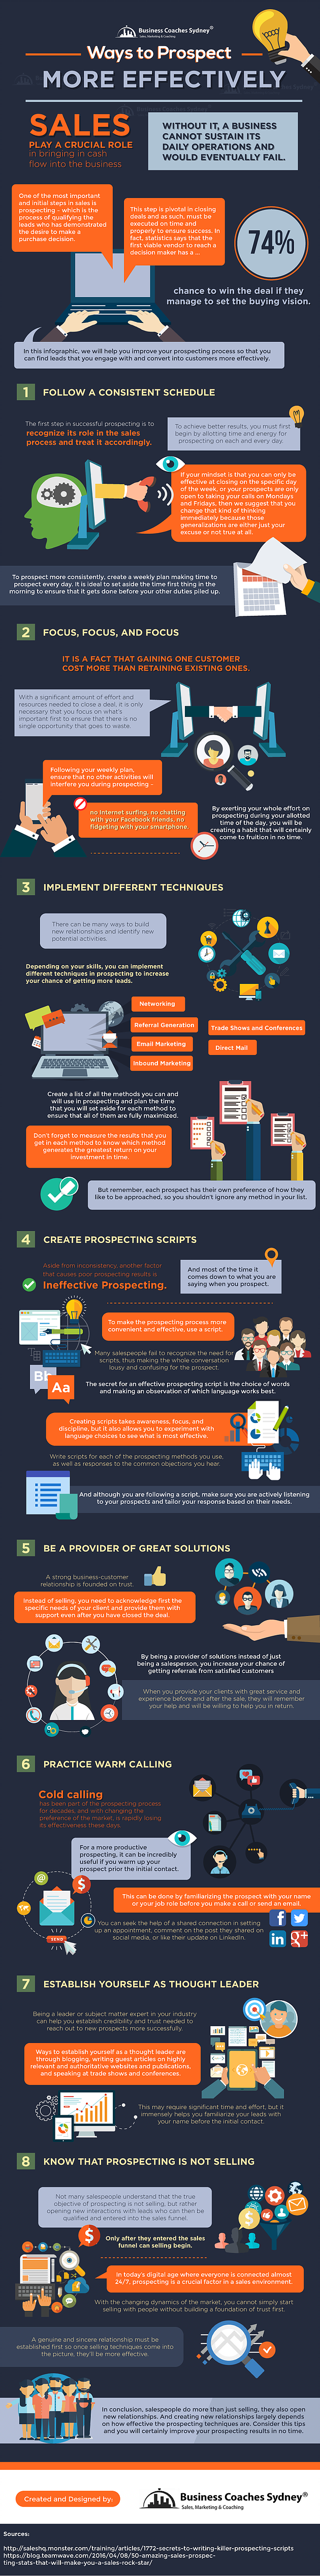 Boost Business Sales Prospecting Strategy [Infographic]